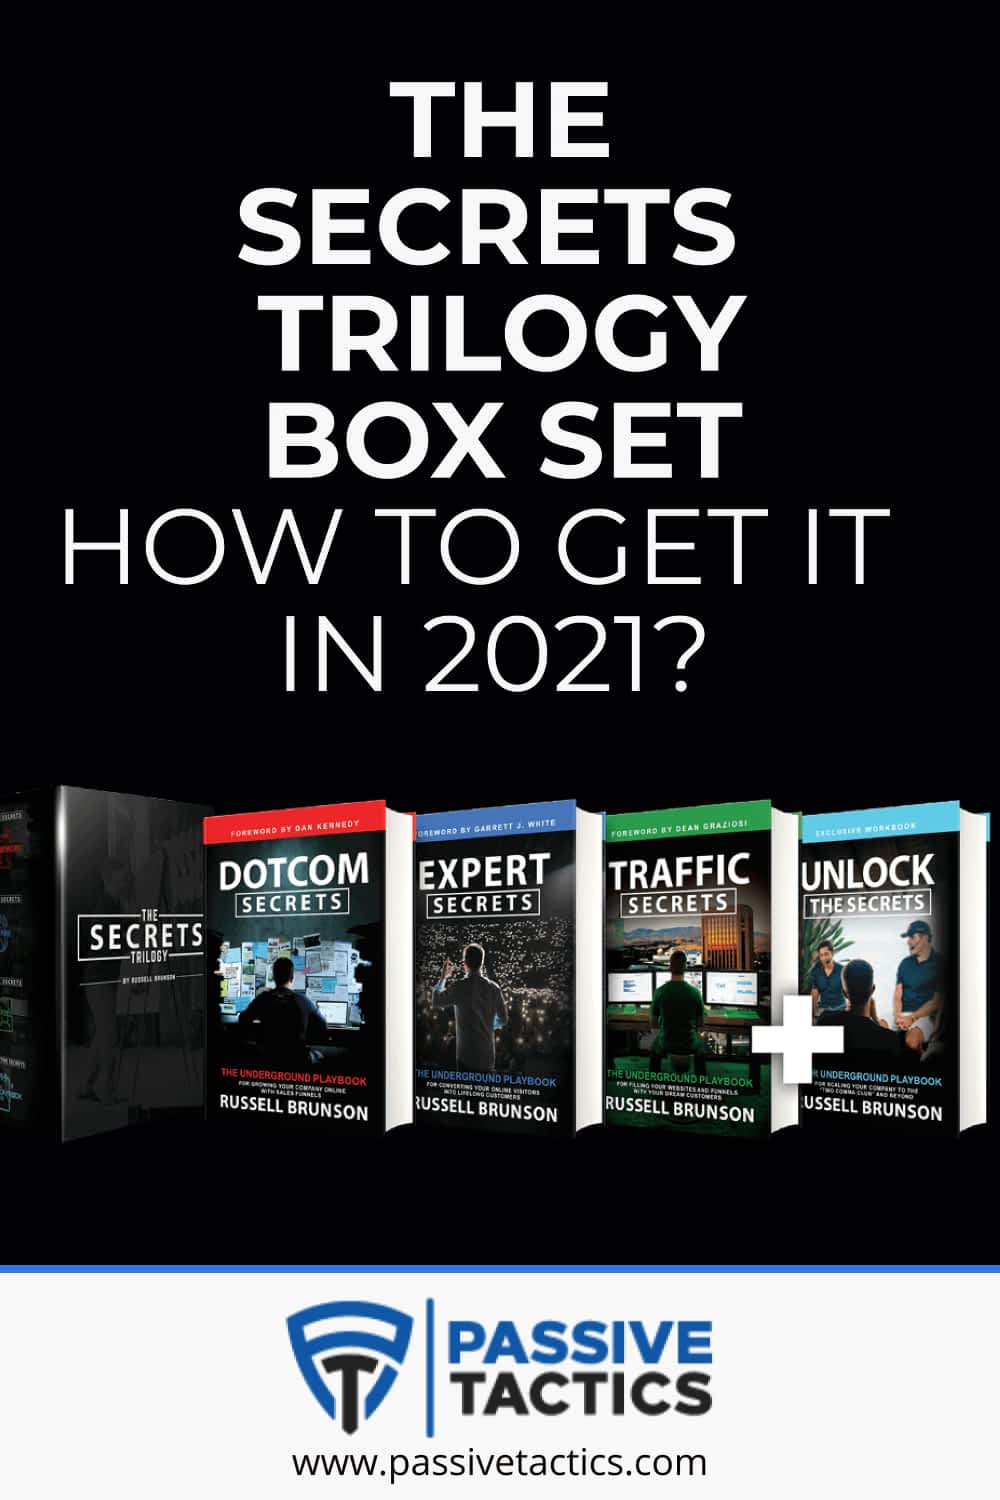 The Secrets Trilogy Box Set: How To Get It In 2021?